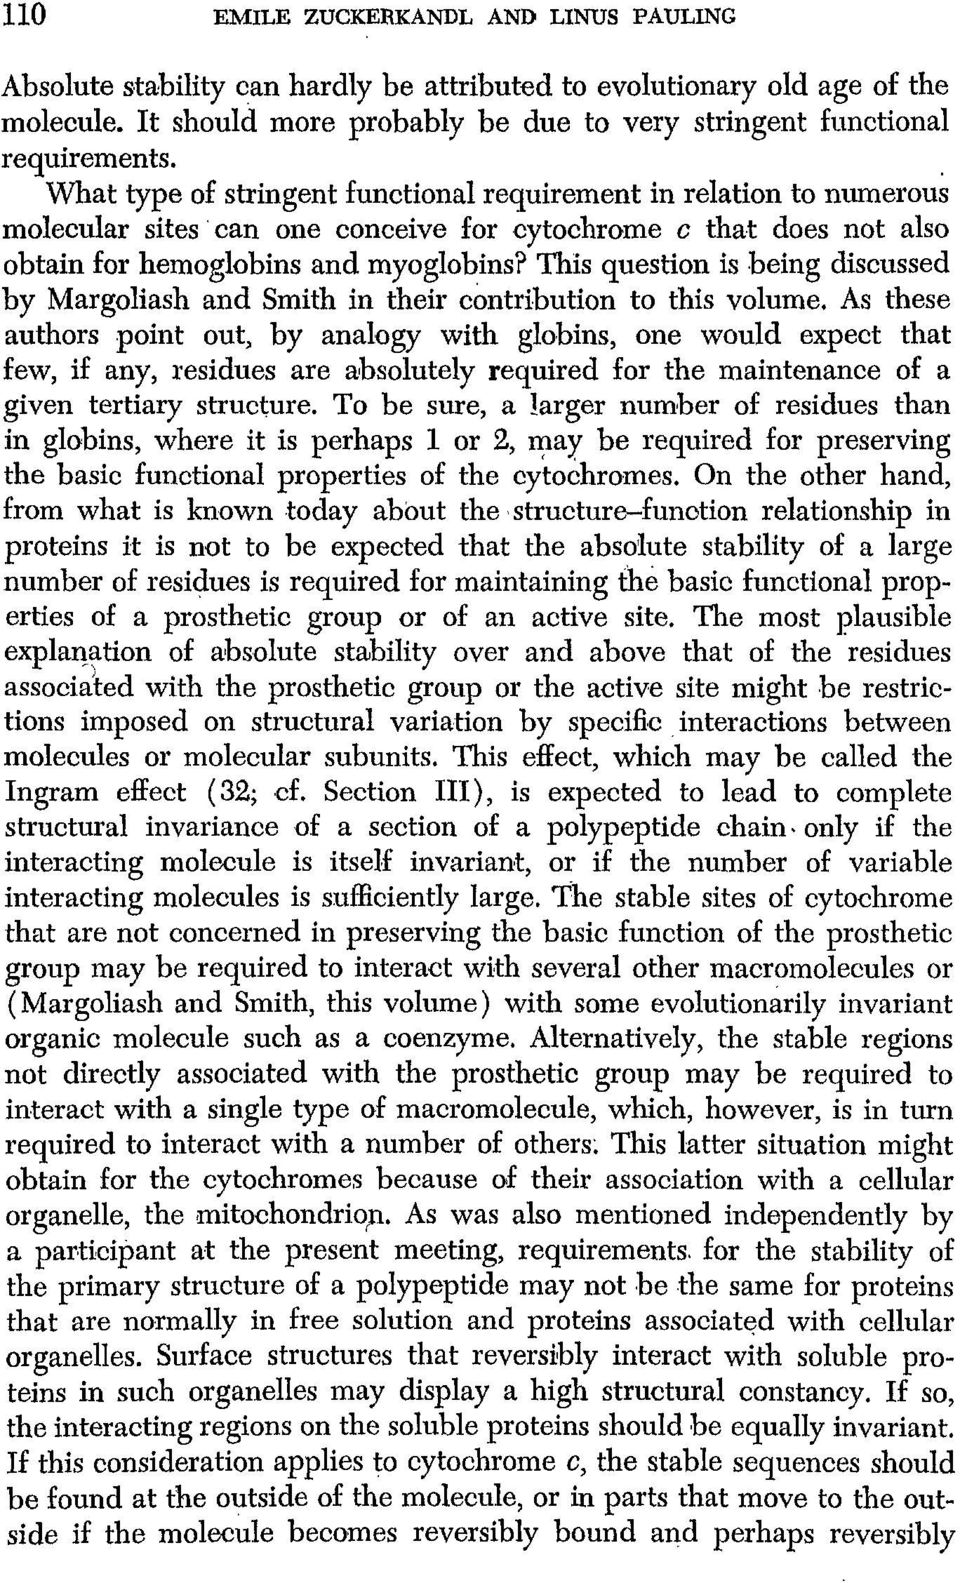 This question is being discussed by Margoliash and Smith in their contribution to this volume, As these authors point out, by analogy with globins, one would expect that few, if any, residues are